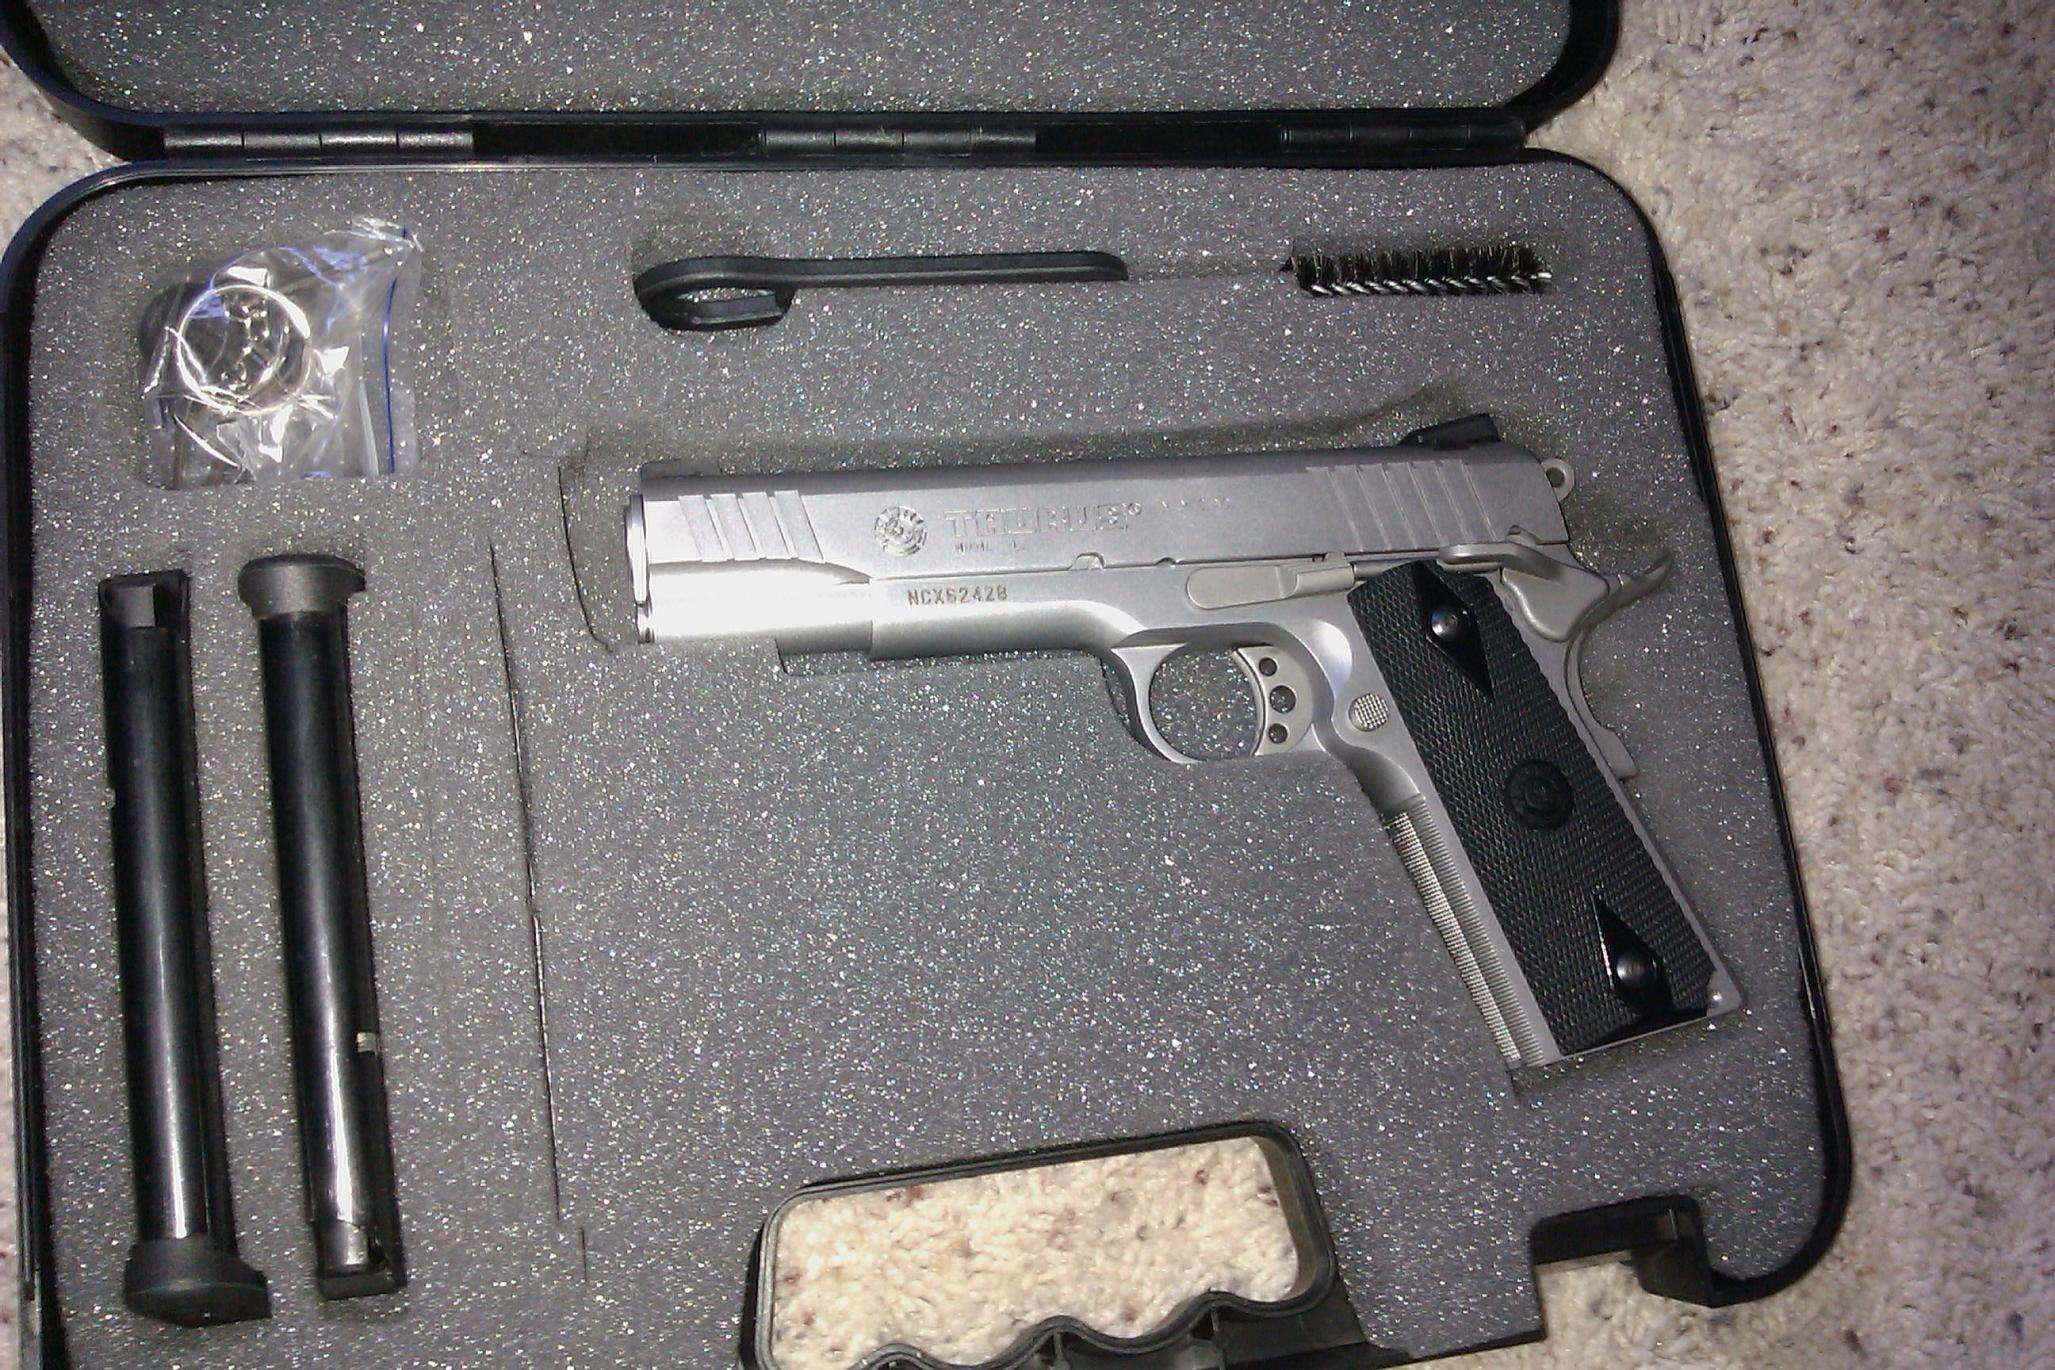 Review of my first 1911-imag0058.jpg